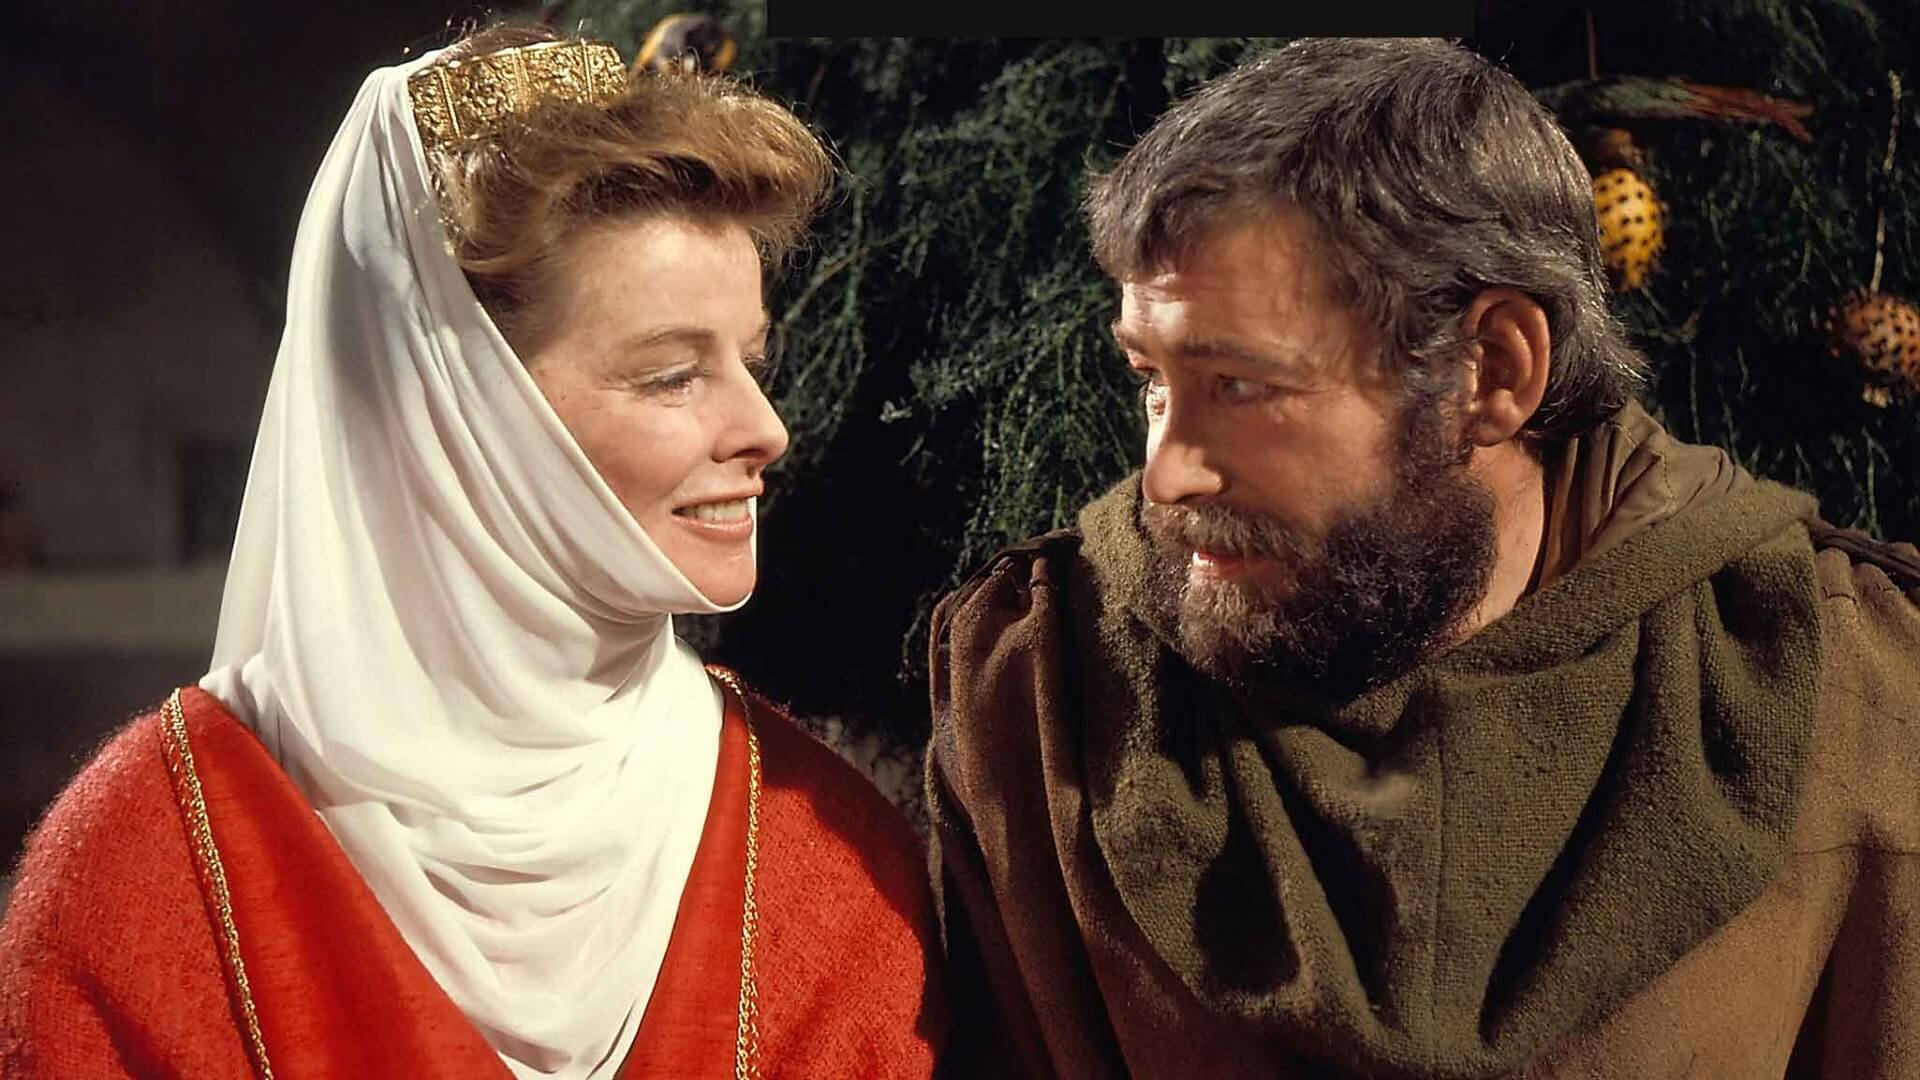 From Stage to Screen: The Lion in Winter